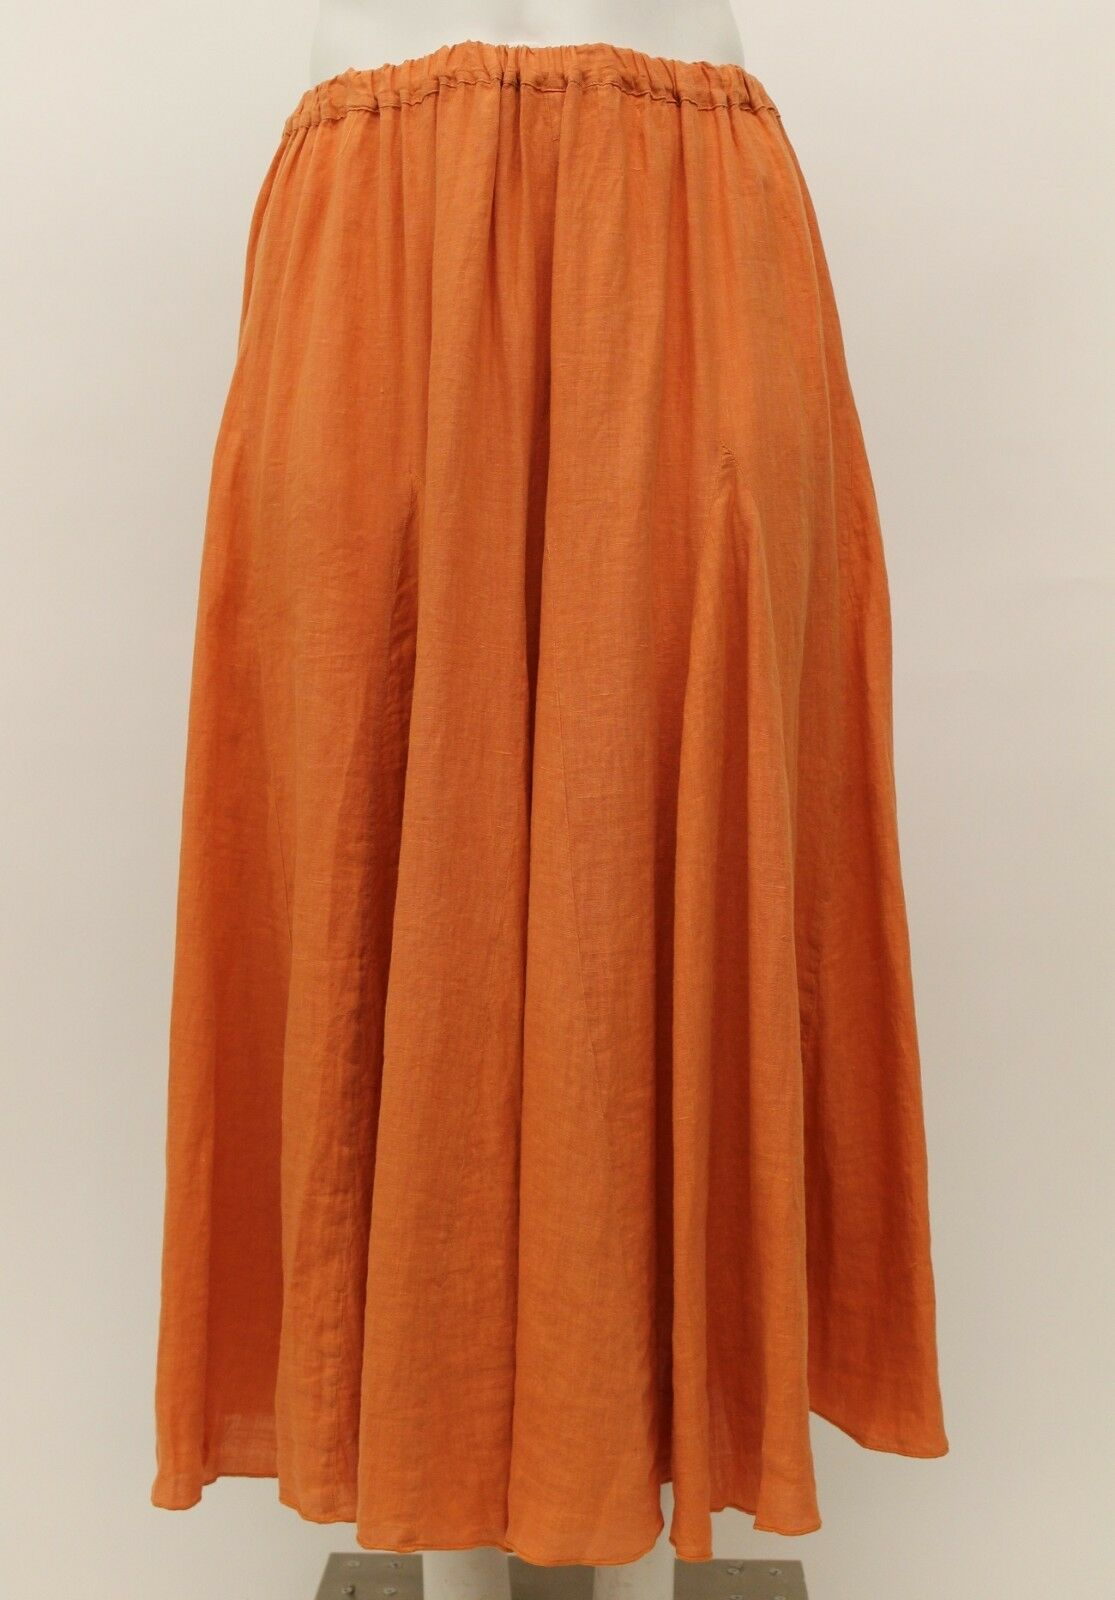 HARI CASUALS SPRING SUMMER LINEN SPLAYING FLARE LONG SKIRT MELON PLUS SIZE XXL